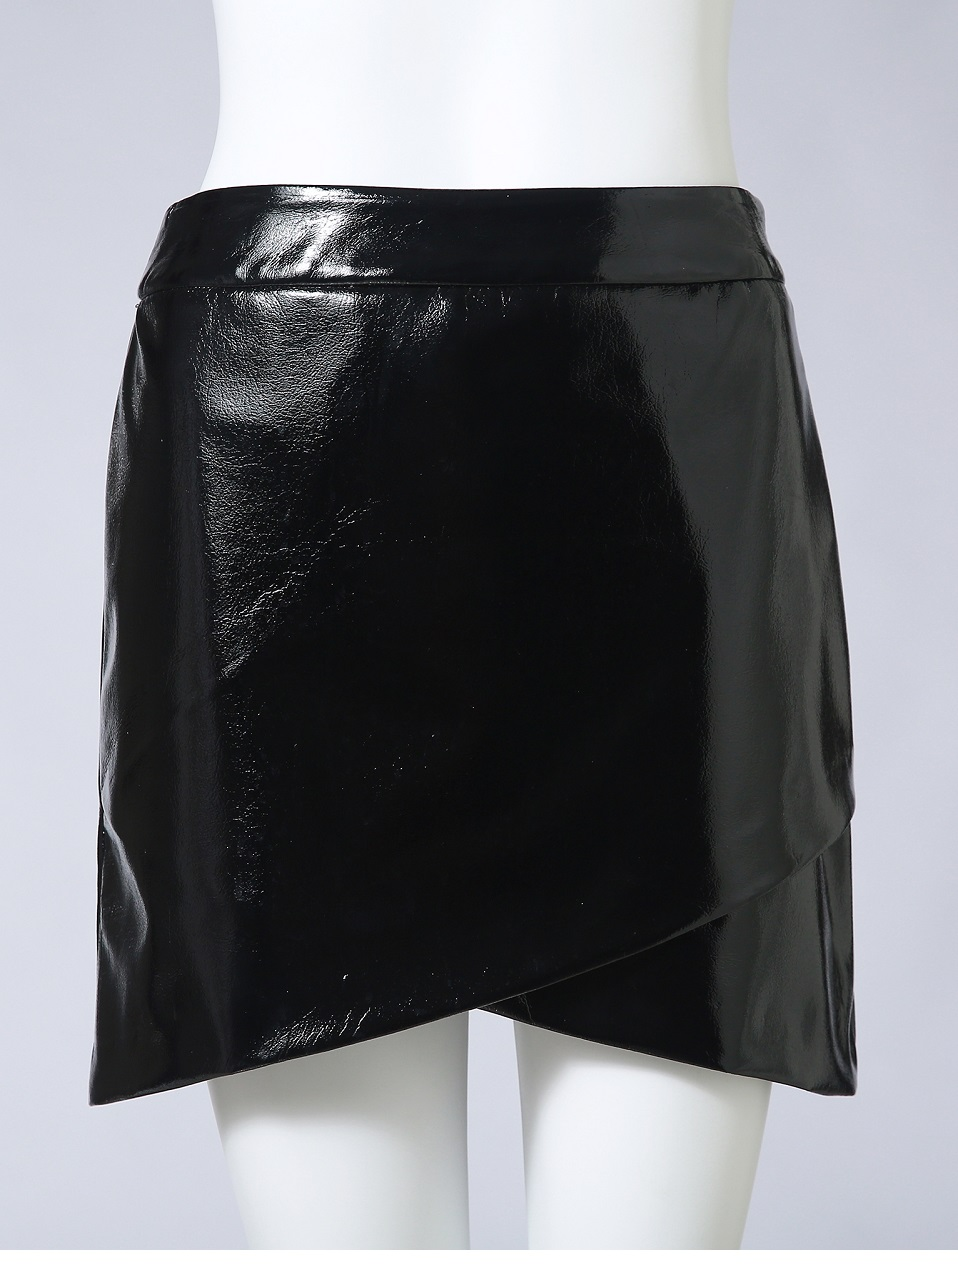 Autumn Winter Women Sexy Mini Skirt Black faux Patent Leather Female Short Pencil Skirt Zipper Fashion Streetwear Skirts Talever 10